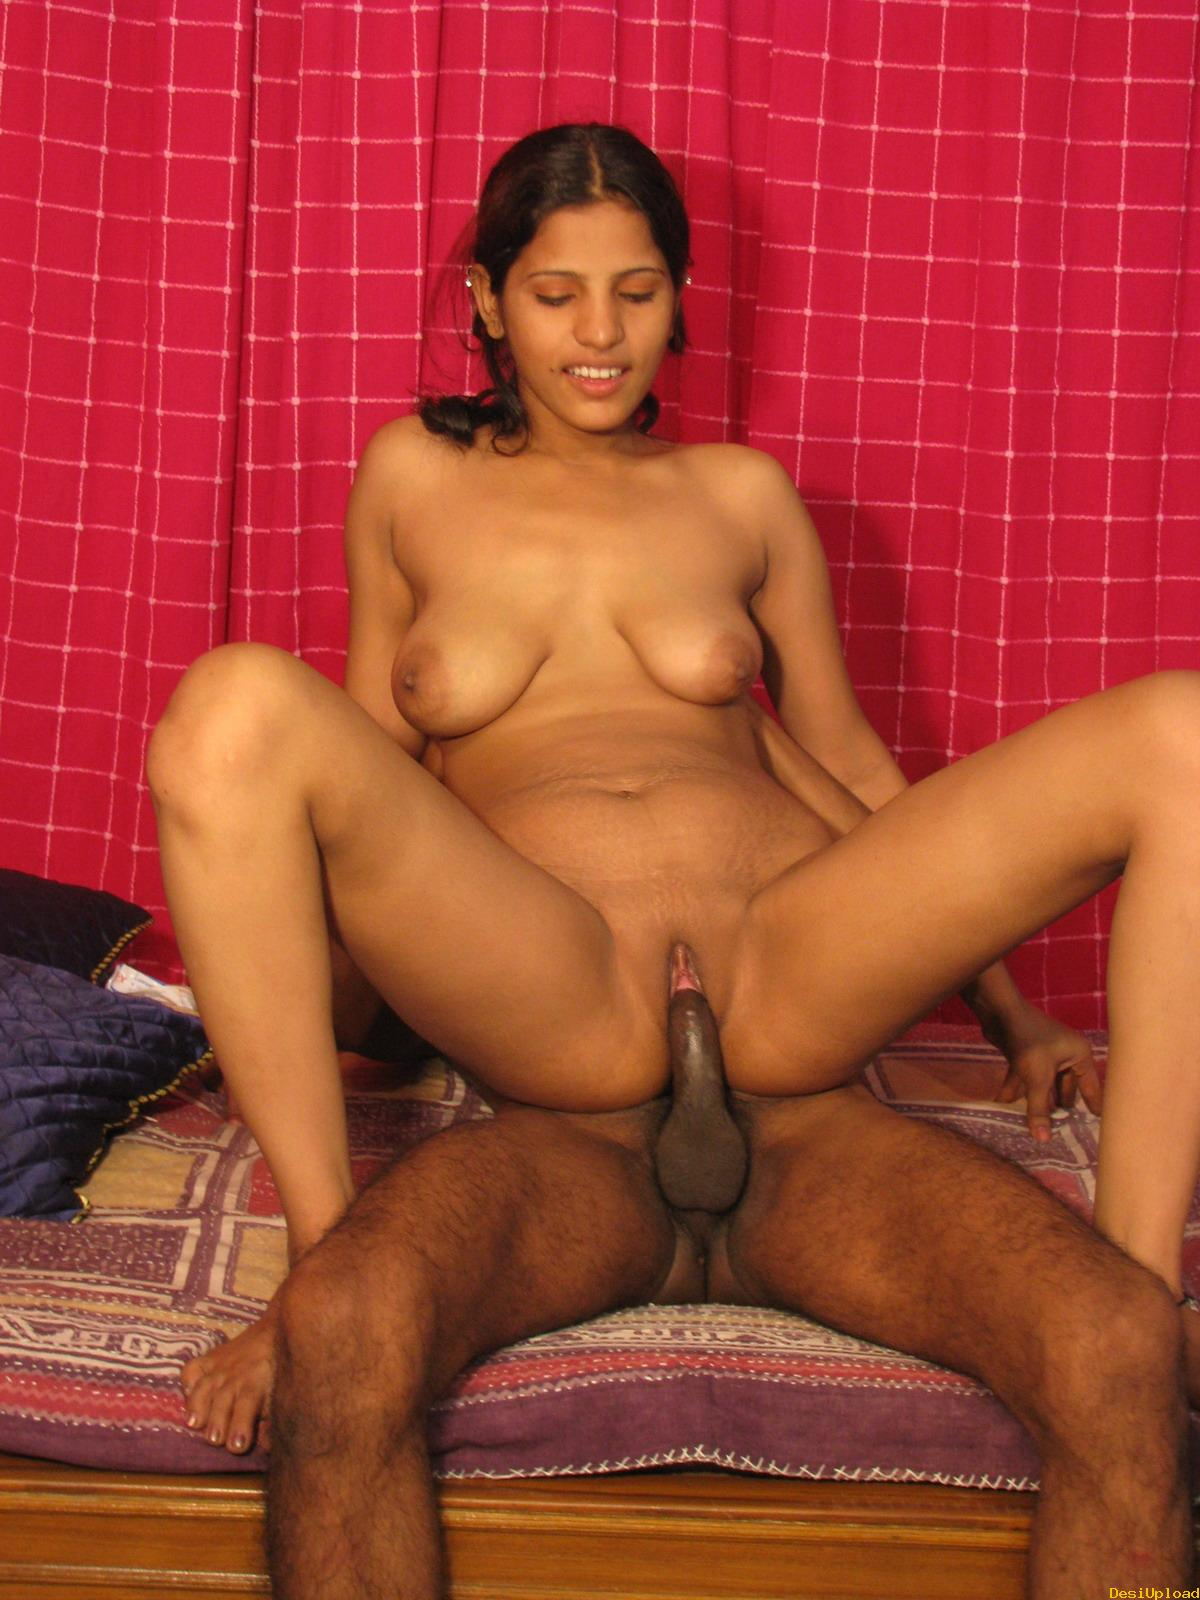 Young and cute bengali girl ride her boyfriend 2